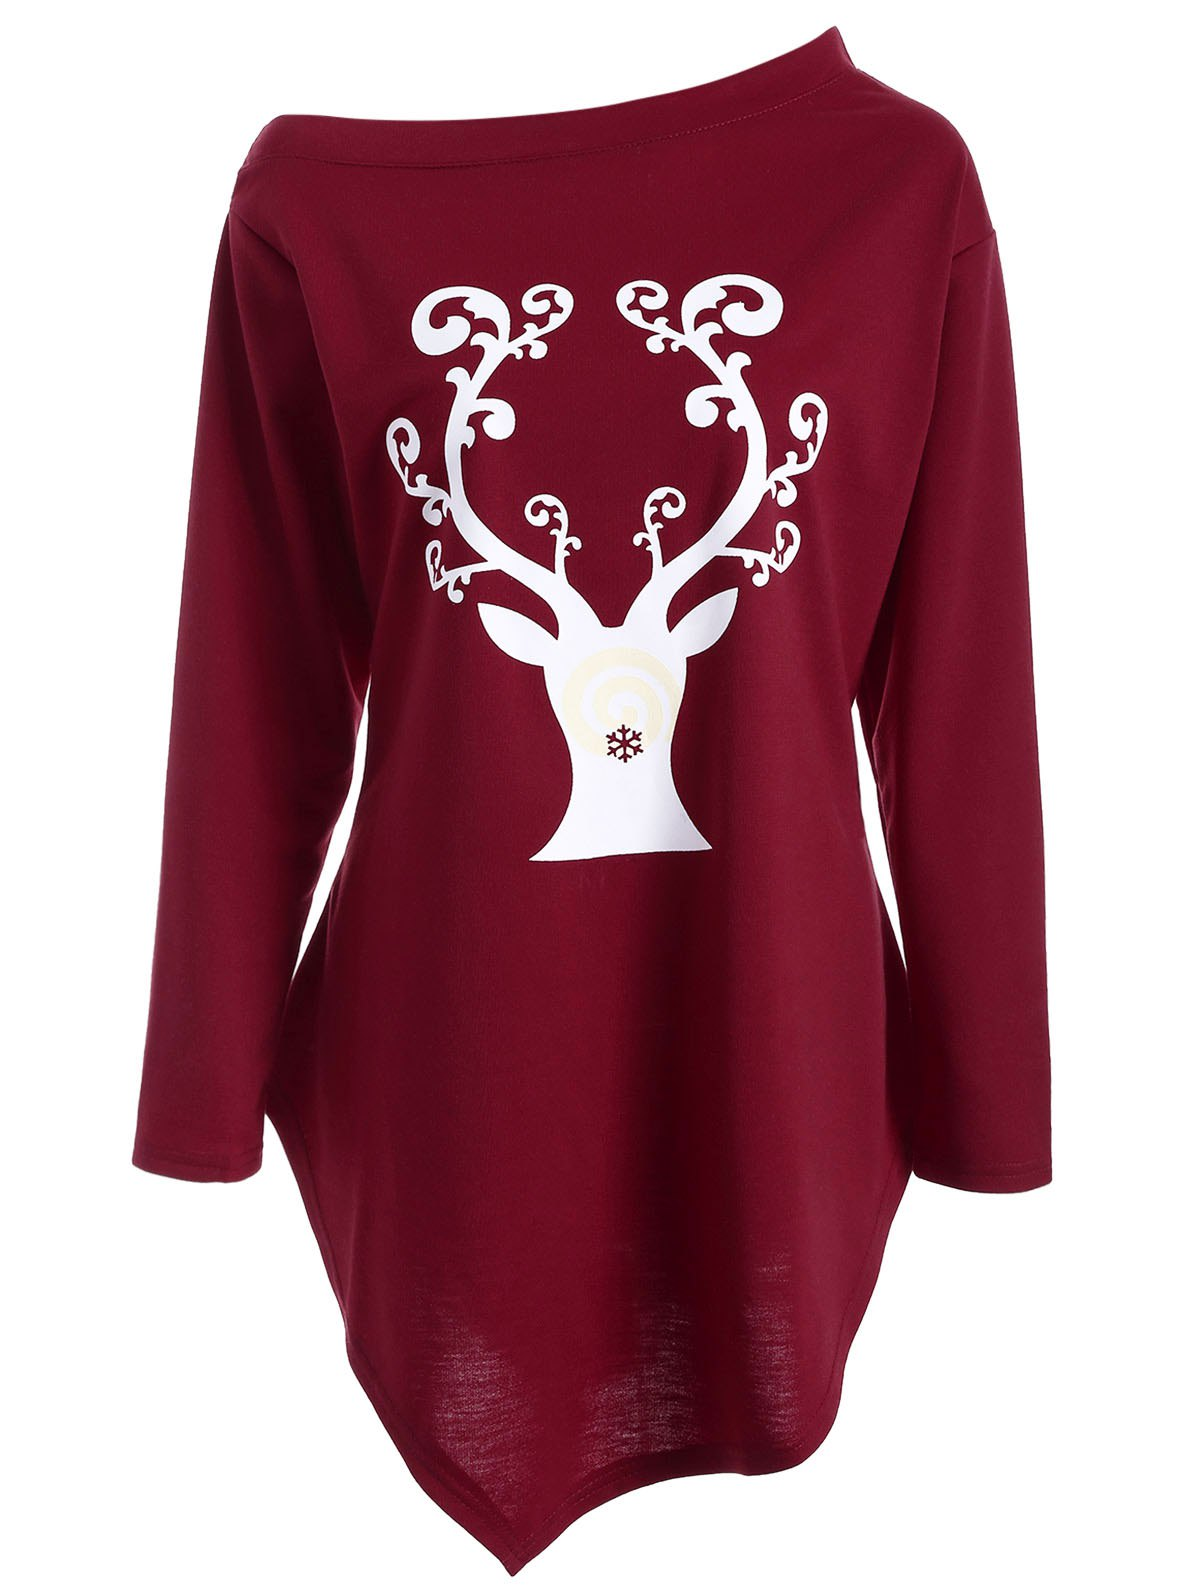 Wapiti Print Asymmetrical Christmas T-ShirtWOMEN<br><br>Size: L; Color: DEEP RED; Material: Polyester; Sleeve Length: Full; Collar: Skew Collar; Style: Fashion; Pattern Type: Print; Season: Fall,Spring; Weight: 0.420kg; Package Contents: 1 x Tee;